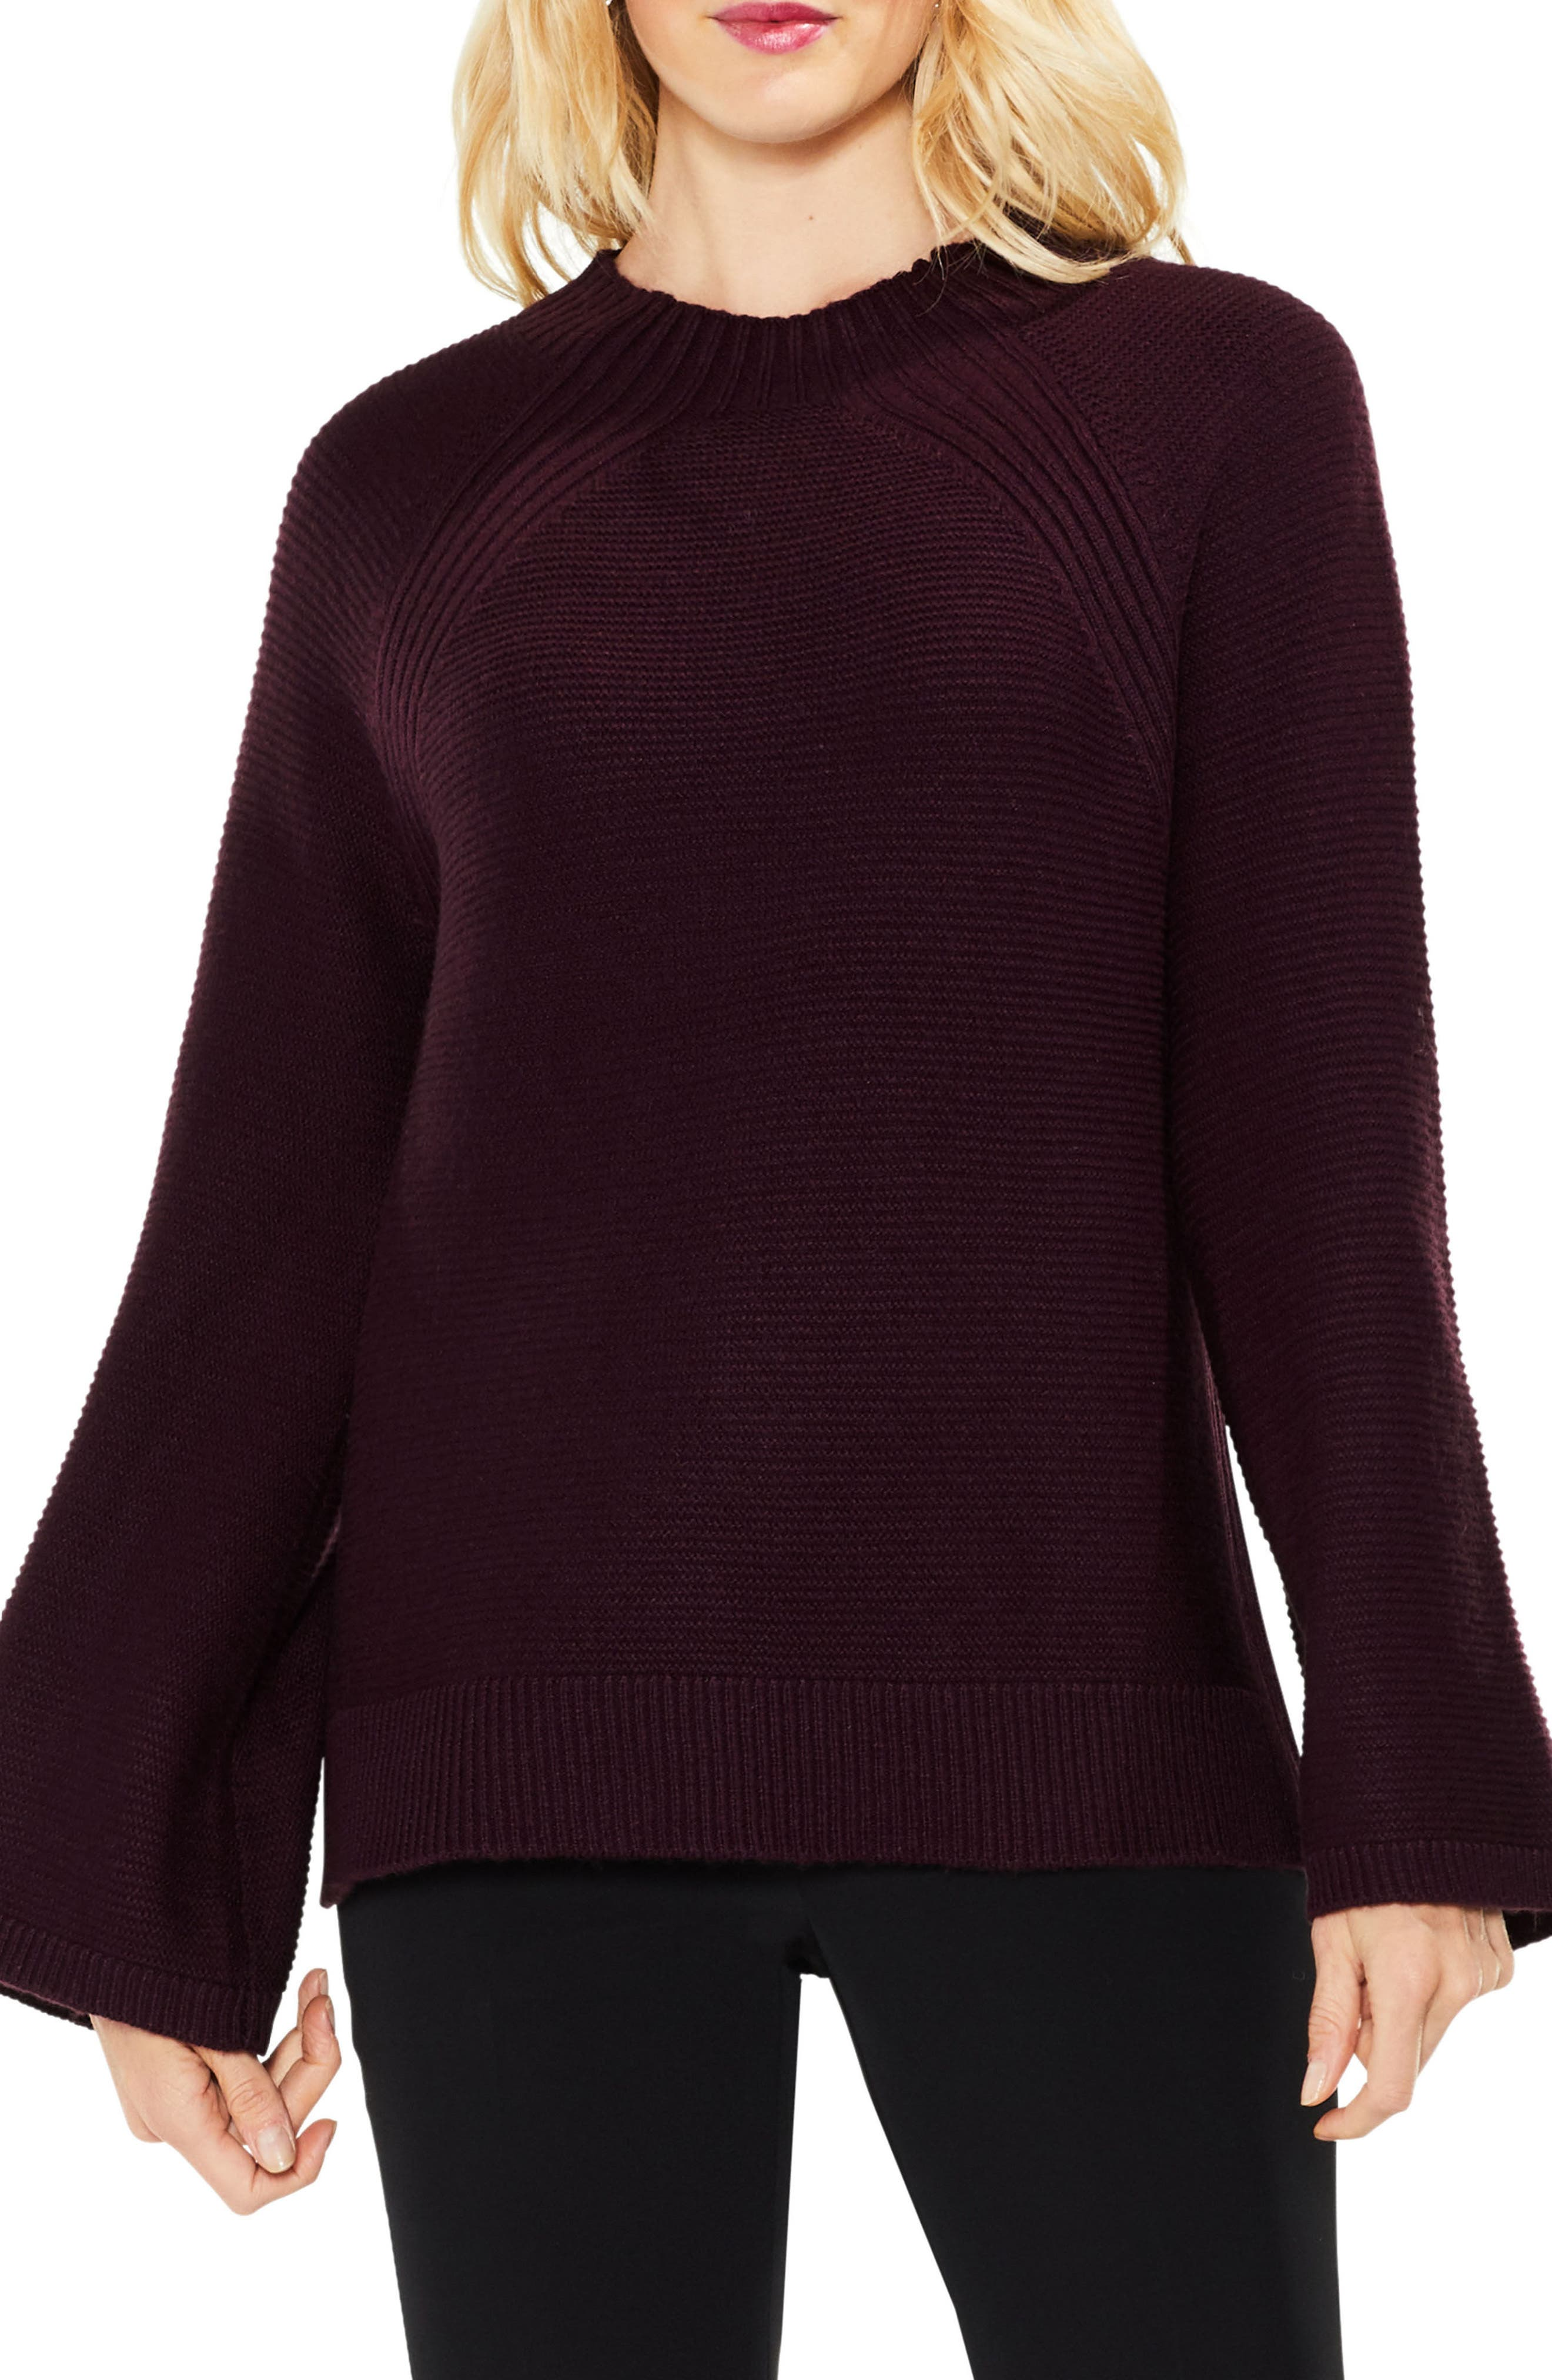 Main Image - Vince Camuto Bell Sleeve Sweater (Regular & Petite)